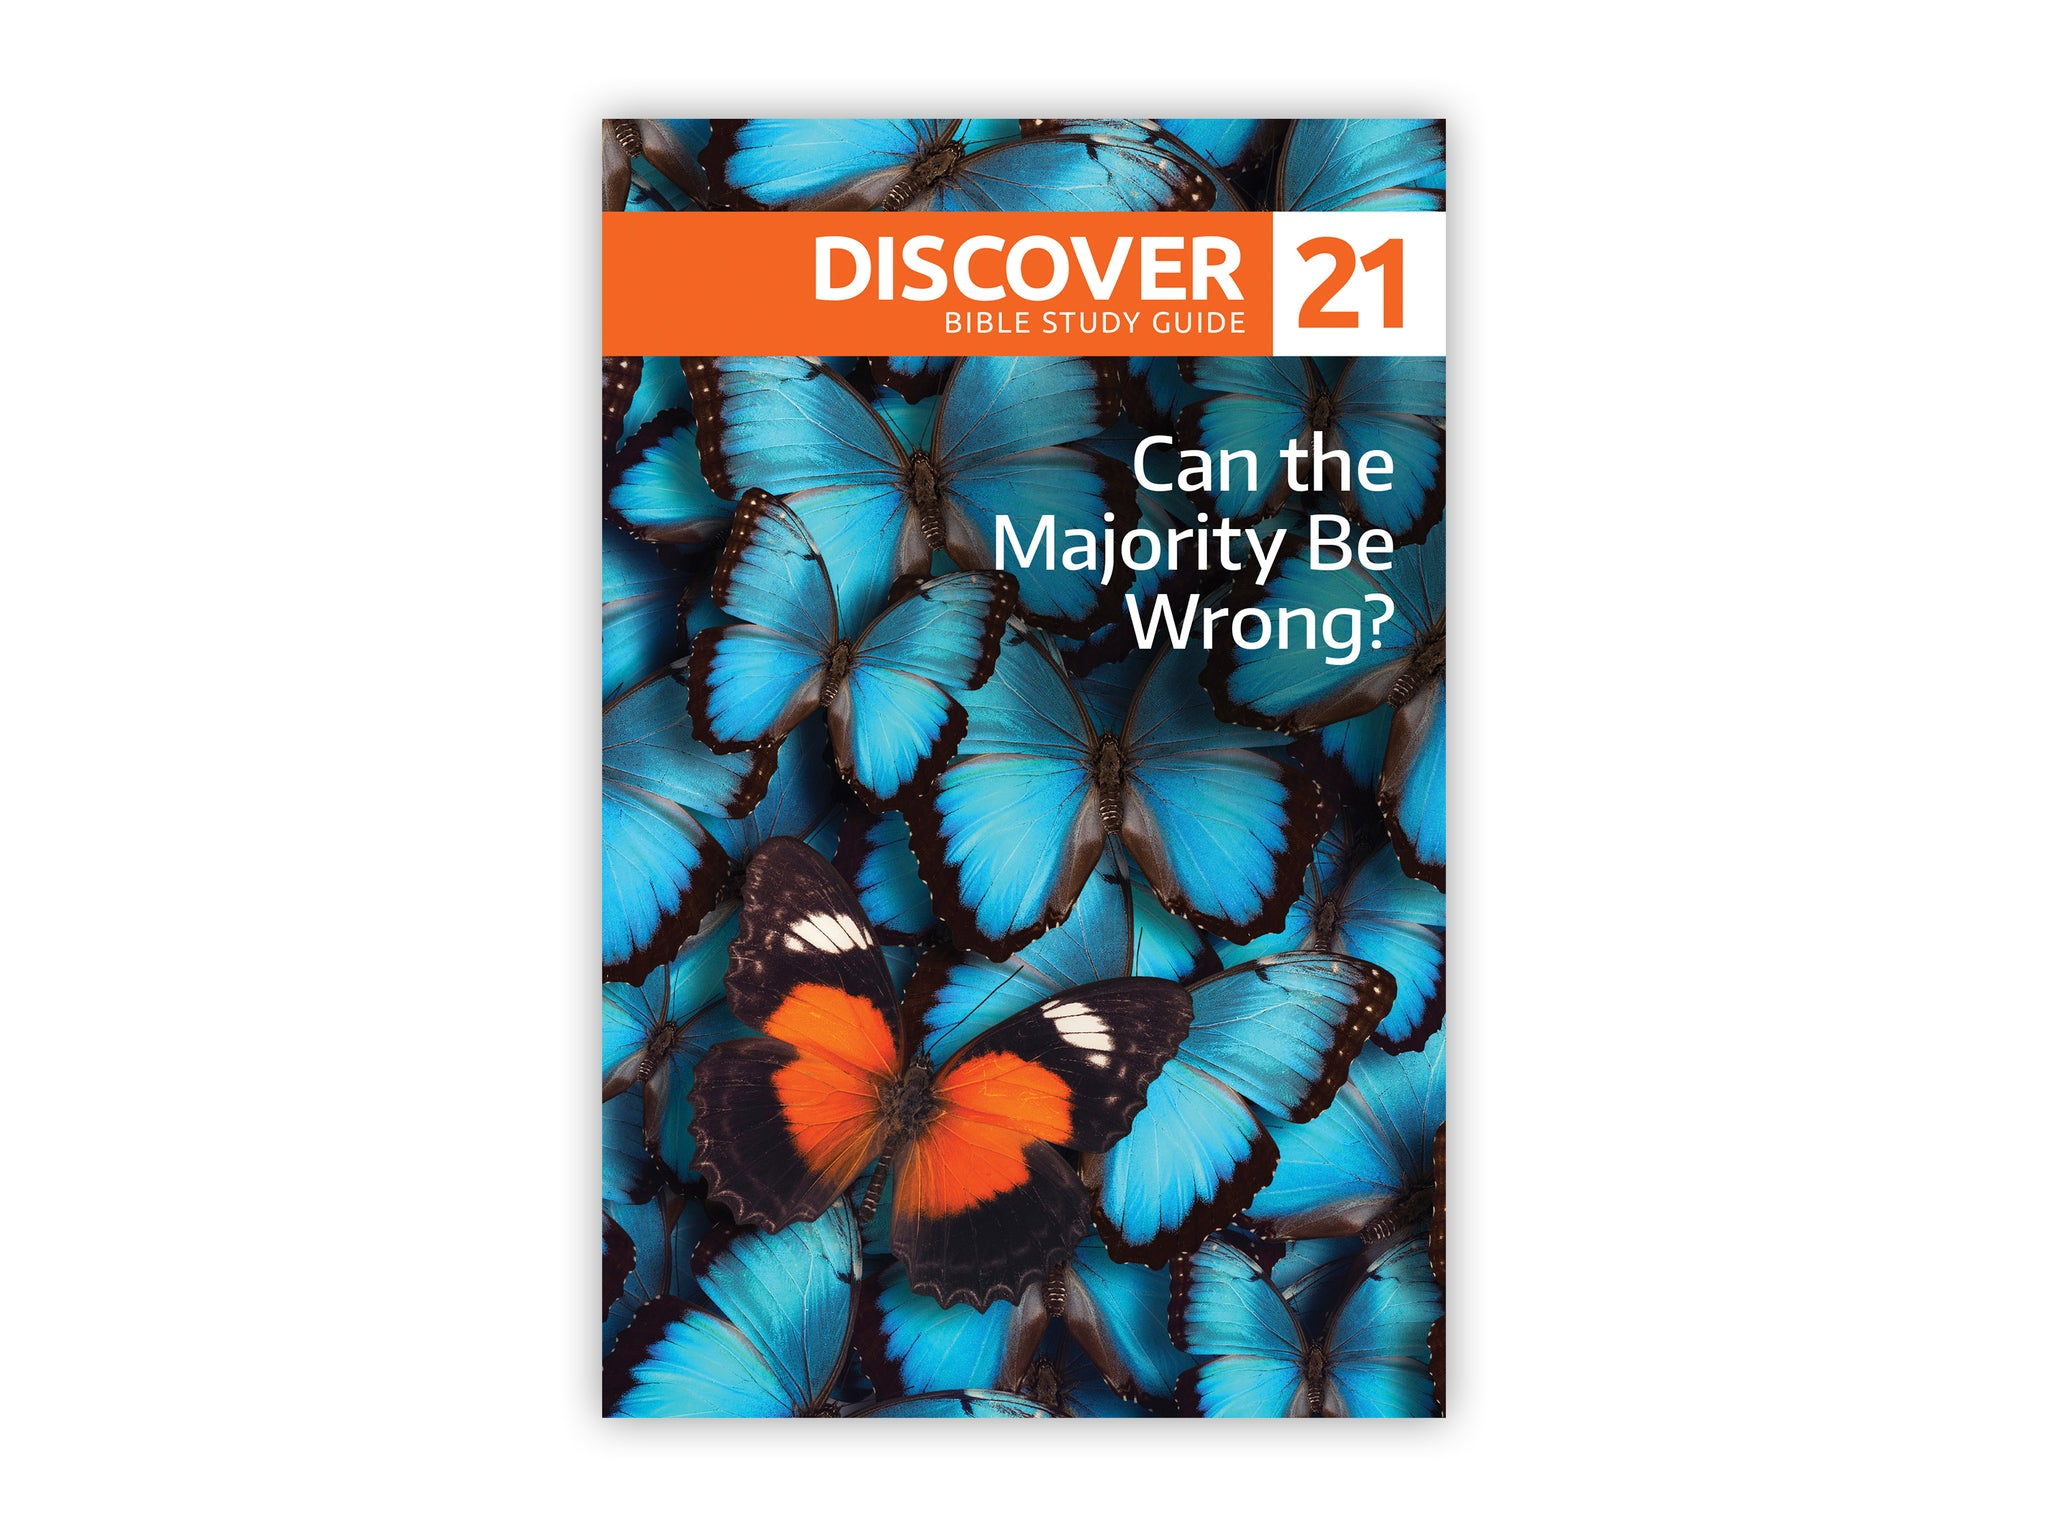 Discover Bible Study Guide #21 - Can the Majority Be Wrong?